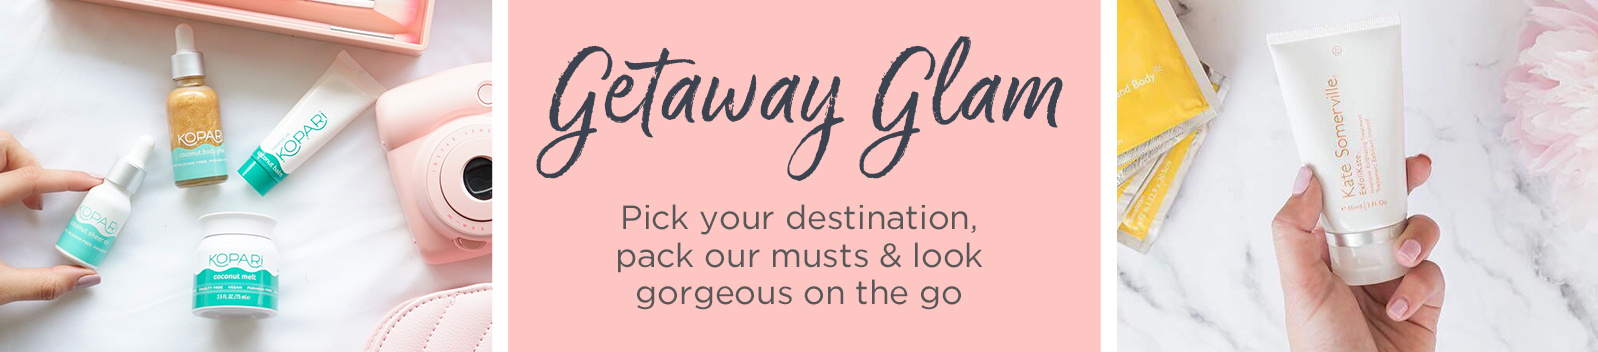 Getaway Glam   Pick your destination, pack our musts & look gorgeous on the go